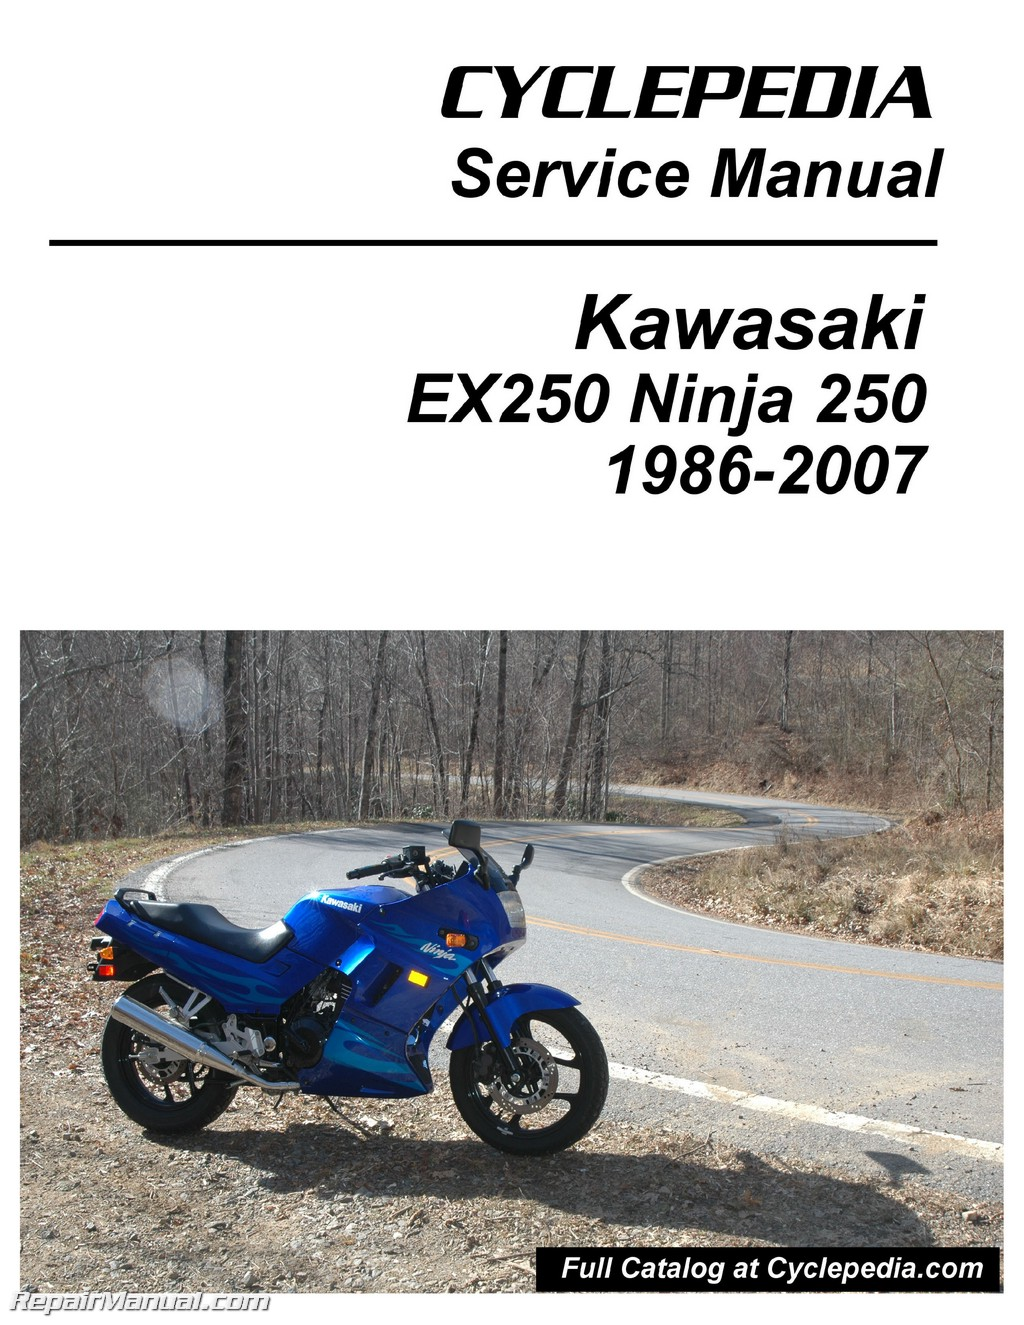 1986-2007 Kawasaki Ninja EX250 Cyclepedia Printed Motorcycle Service Manual